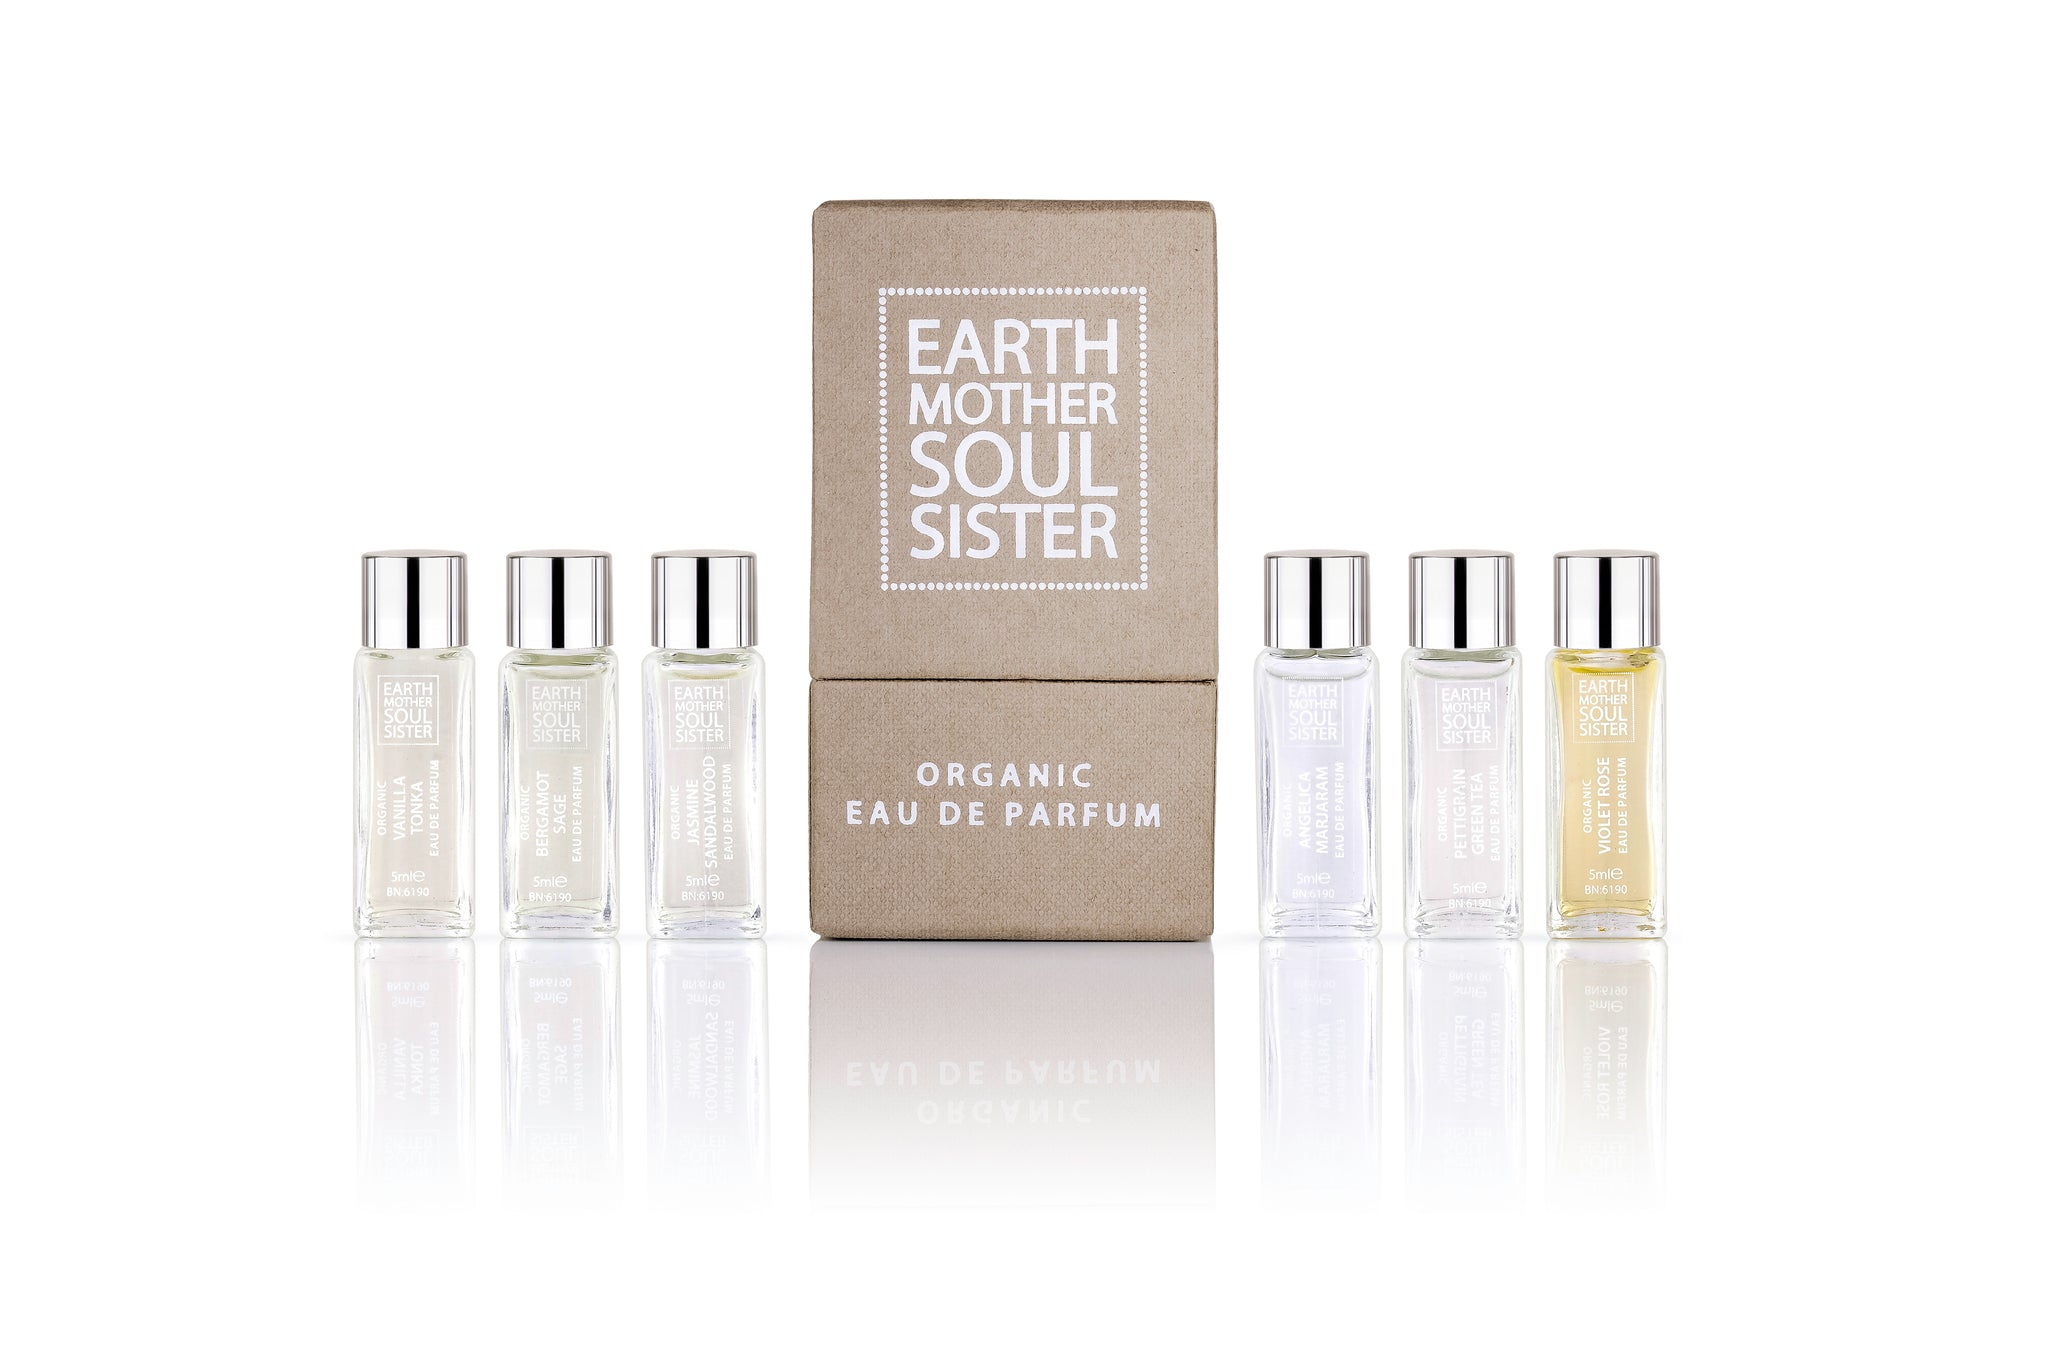 EARTH | PERFUME COLLECTION BOX